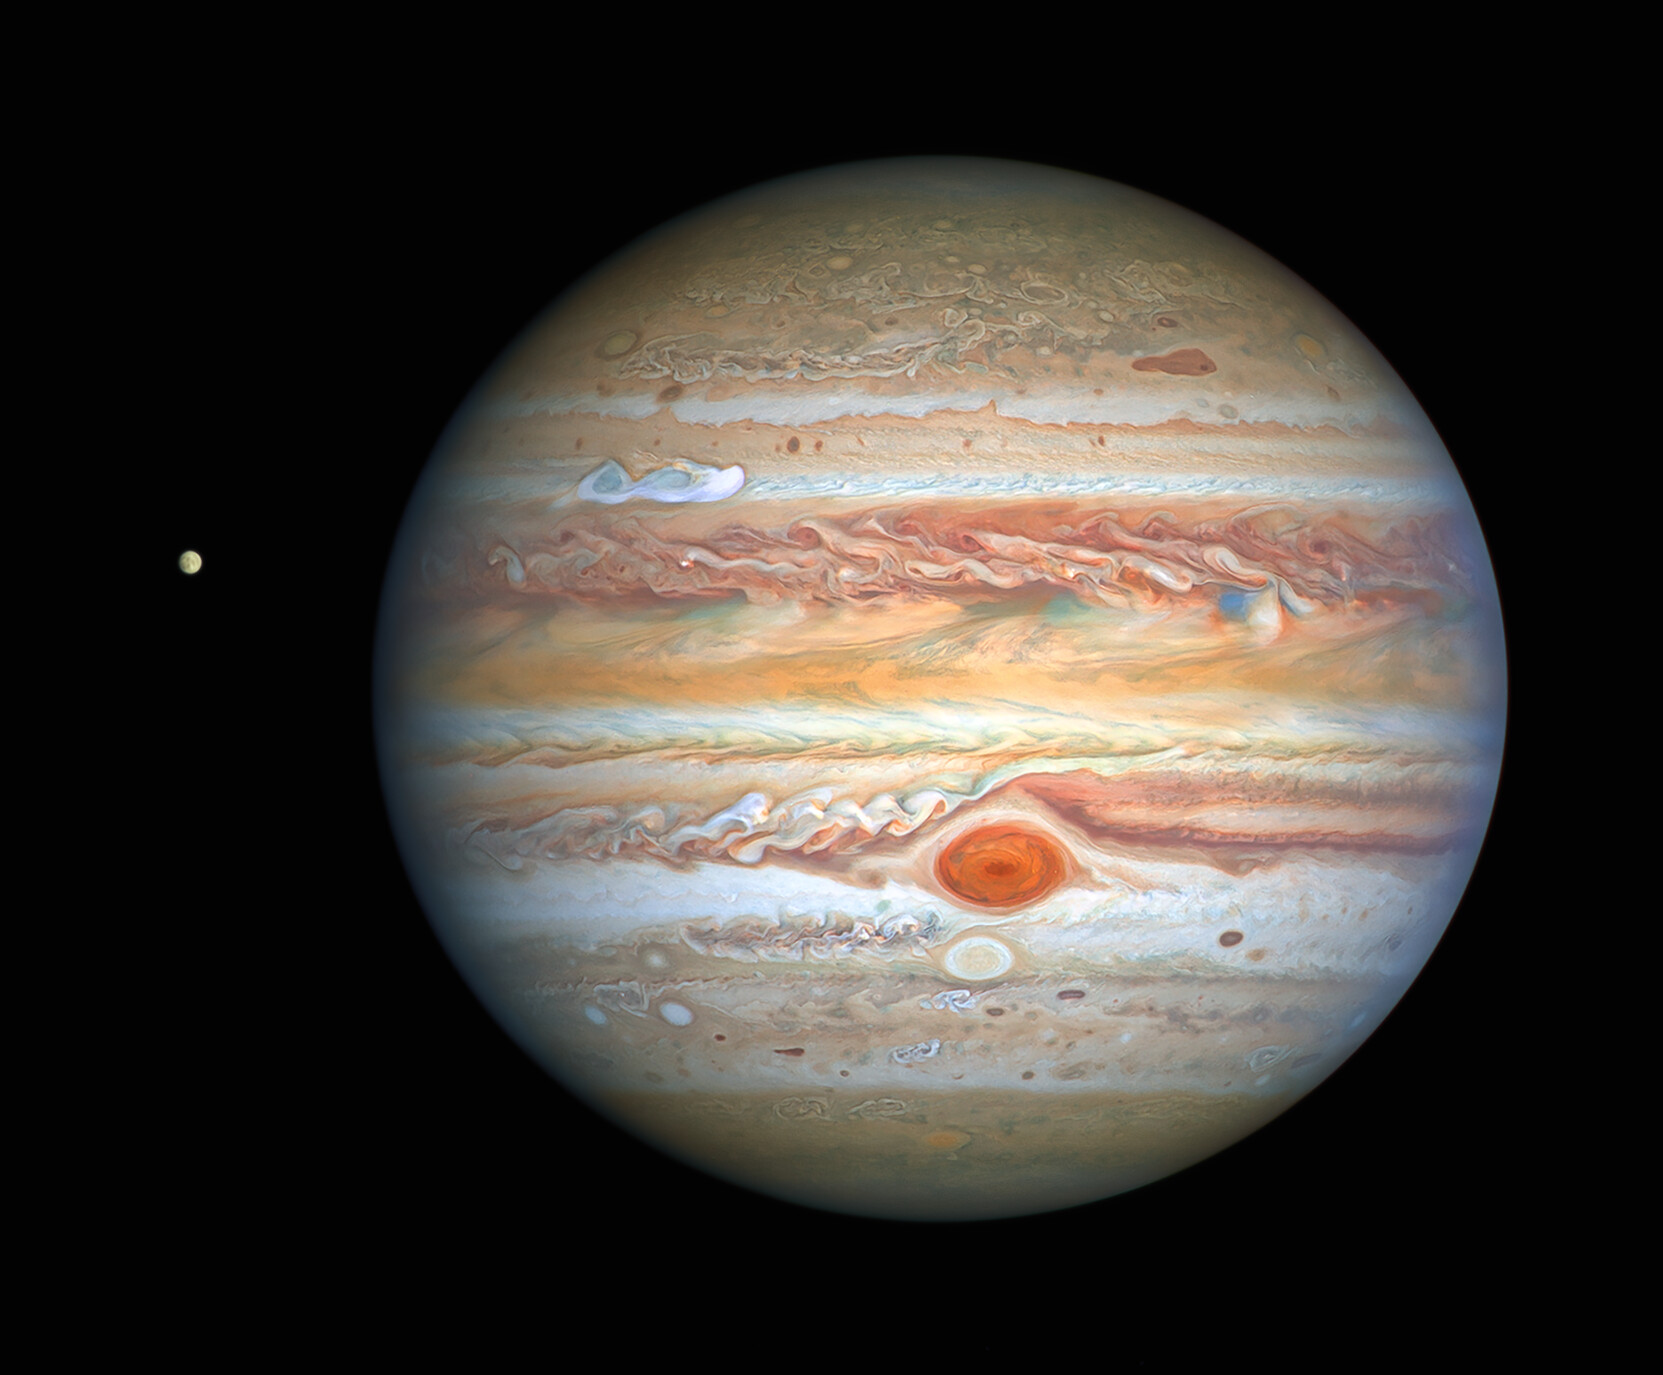 Hubble captures new image of Jupiter and Europa